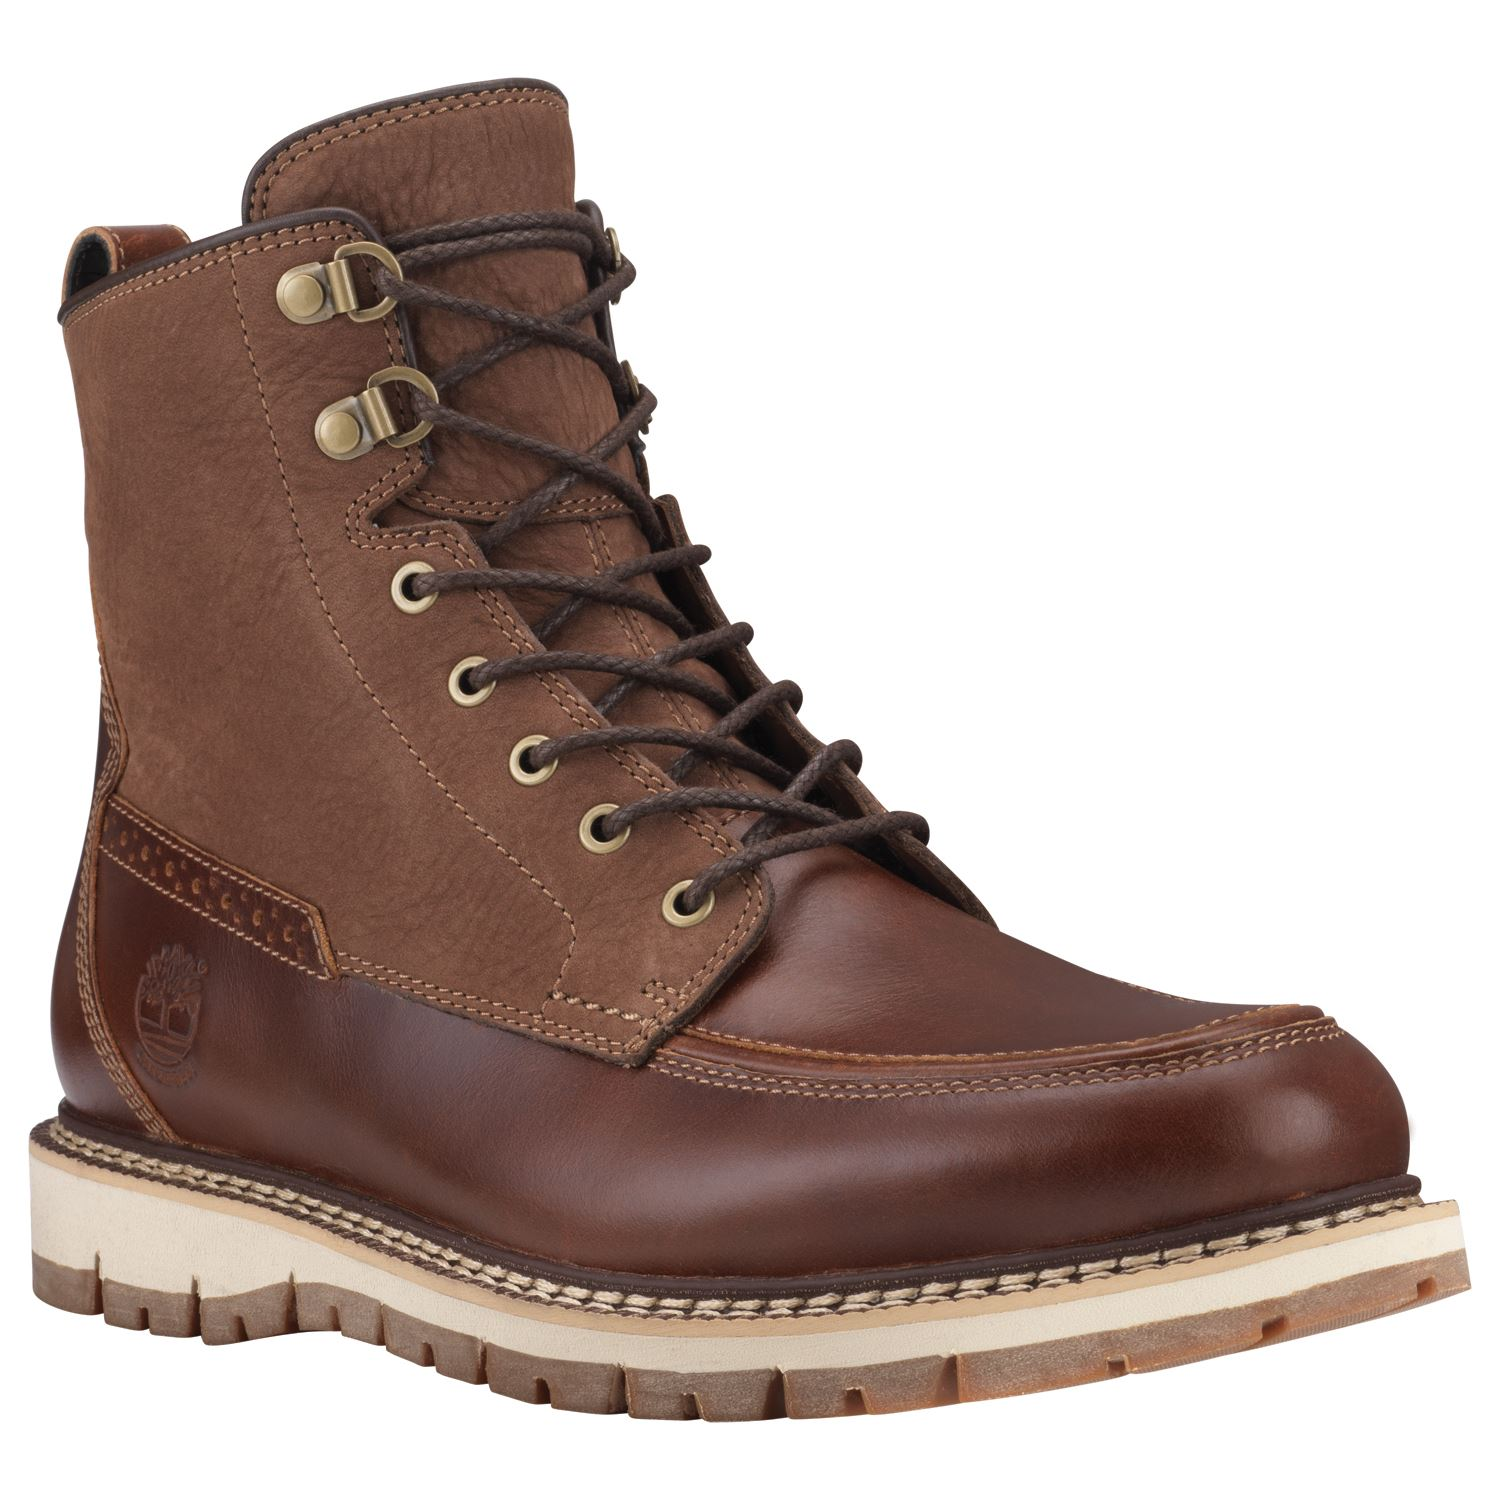 timberland mens britton hill waterproof moc toe boot ebay. Black Bedroom Furniture Sets. Home Design Ideas